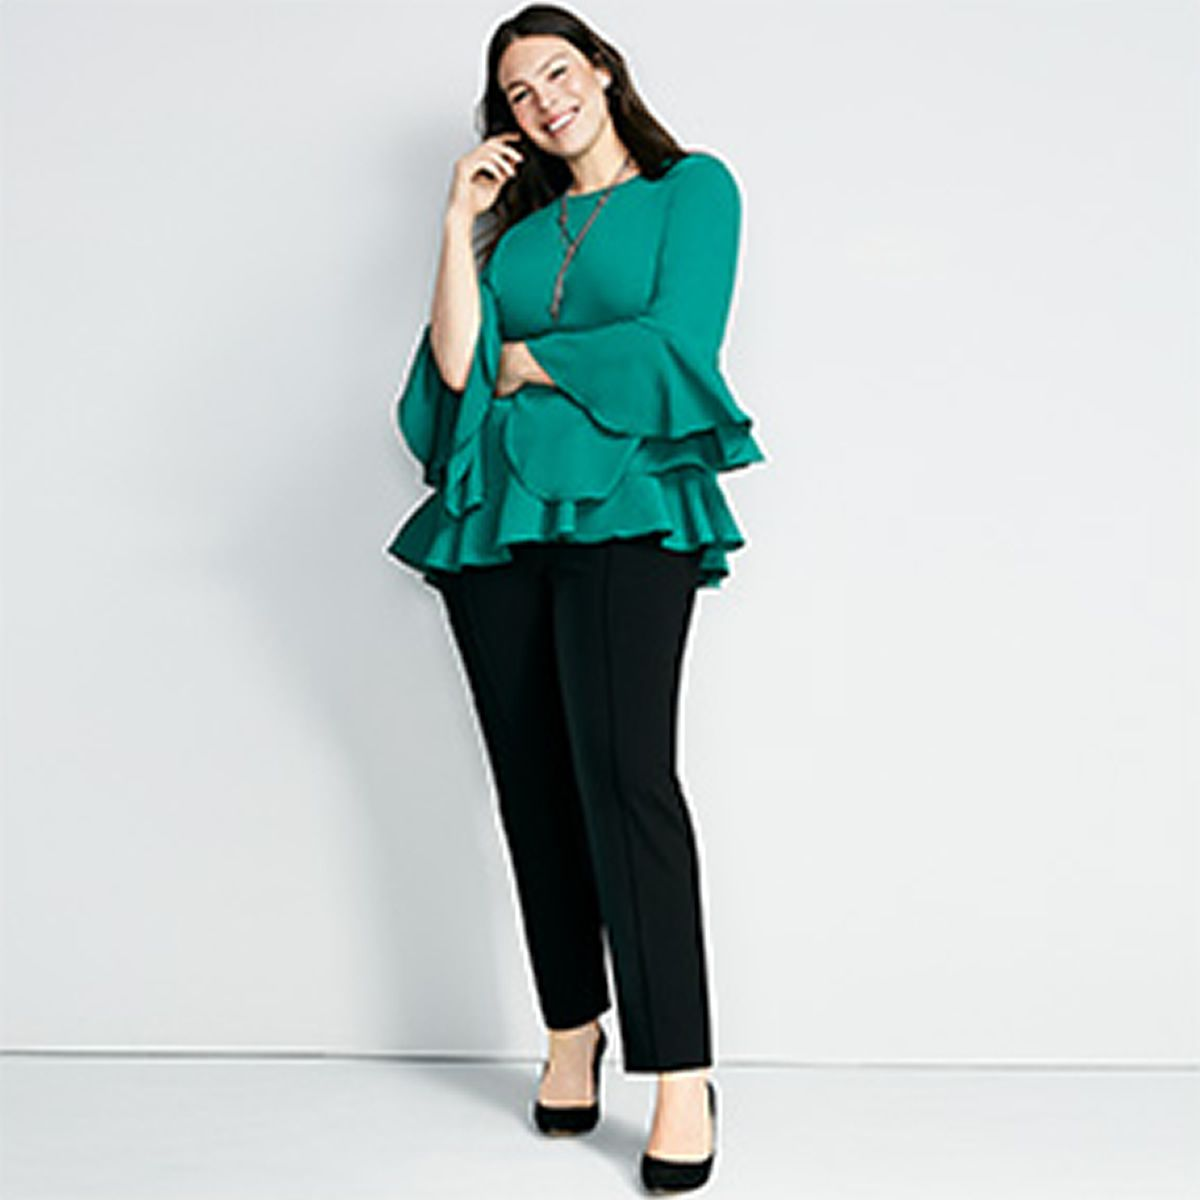 Macy Outlet Store Locations: Plus Size Clothing For Women